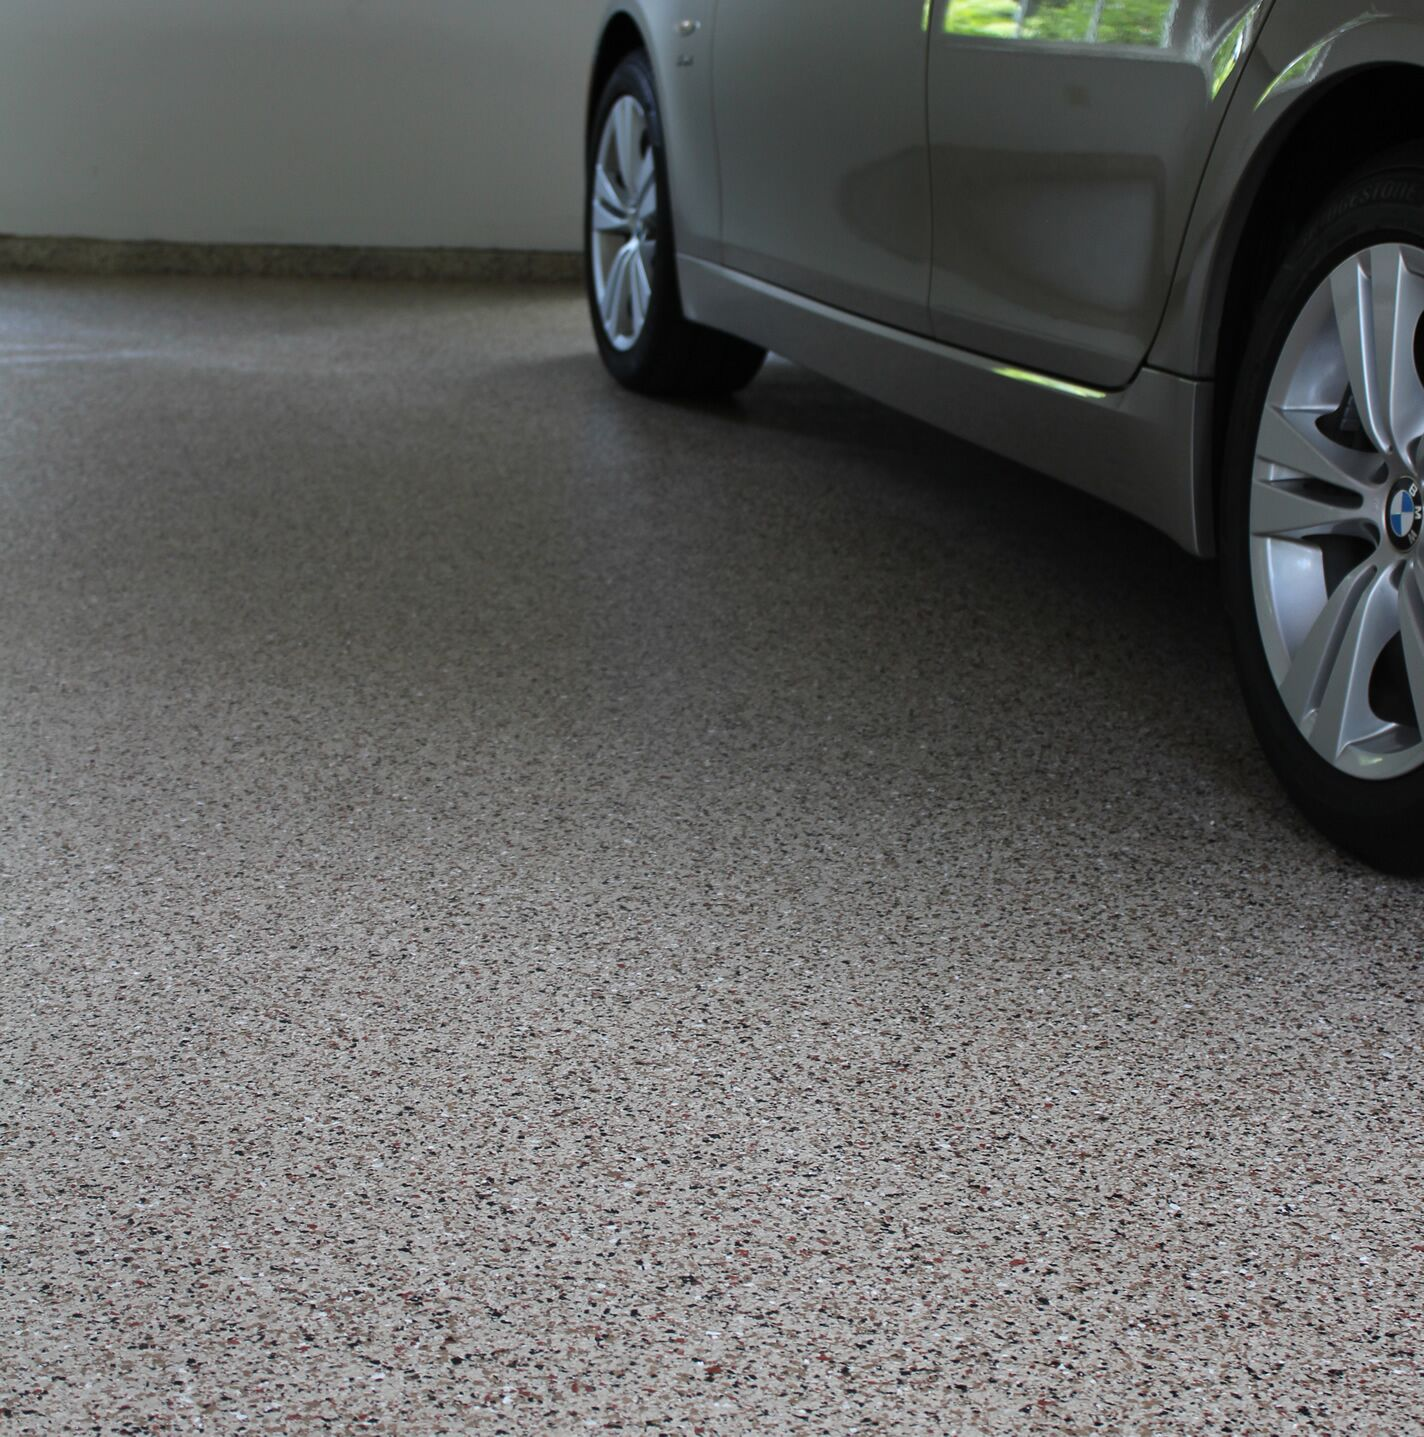 to resin depot vibrant epoxy floor hallmark cost colors for coating sherwin home williams clear concrete design garage kit